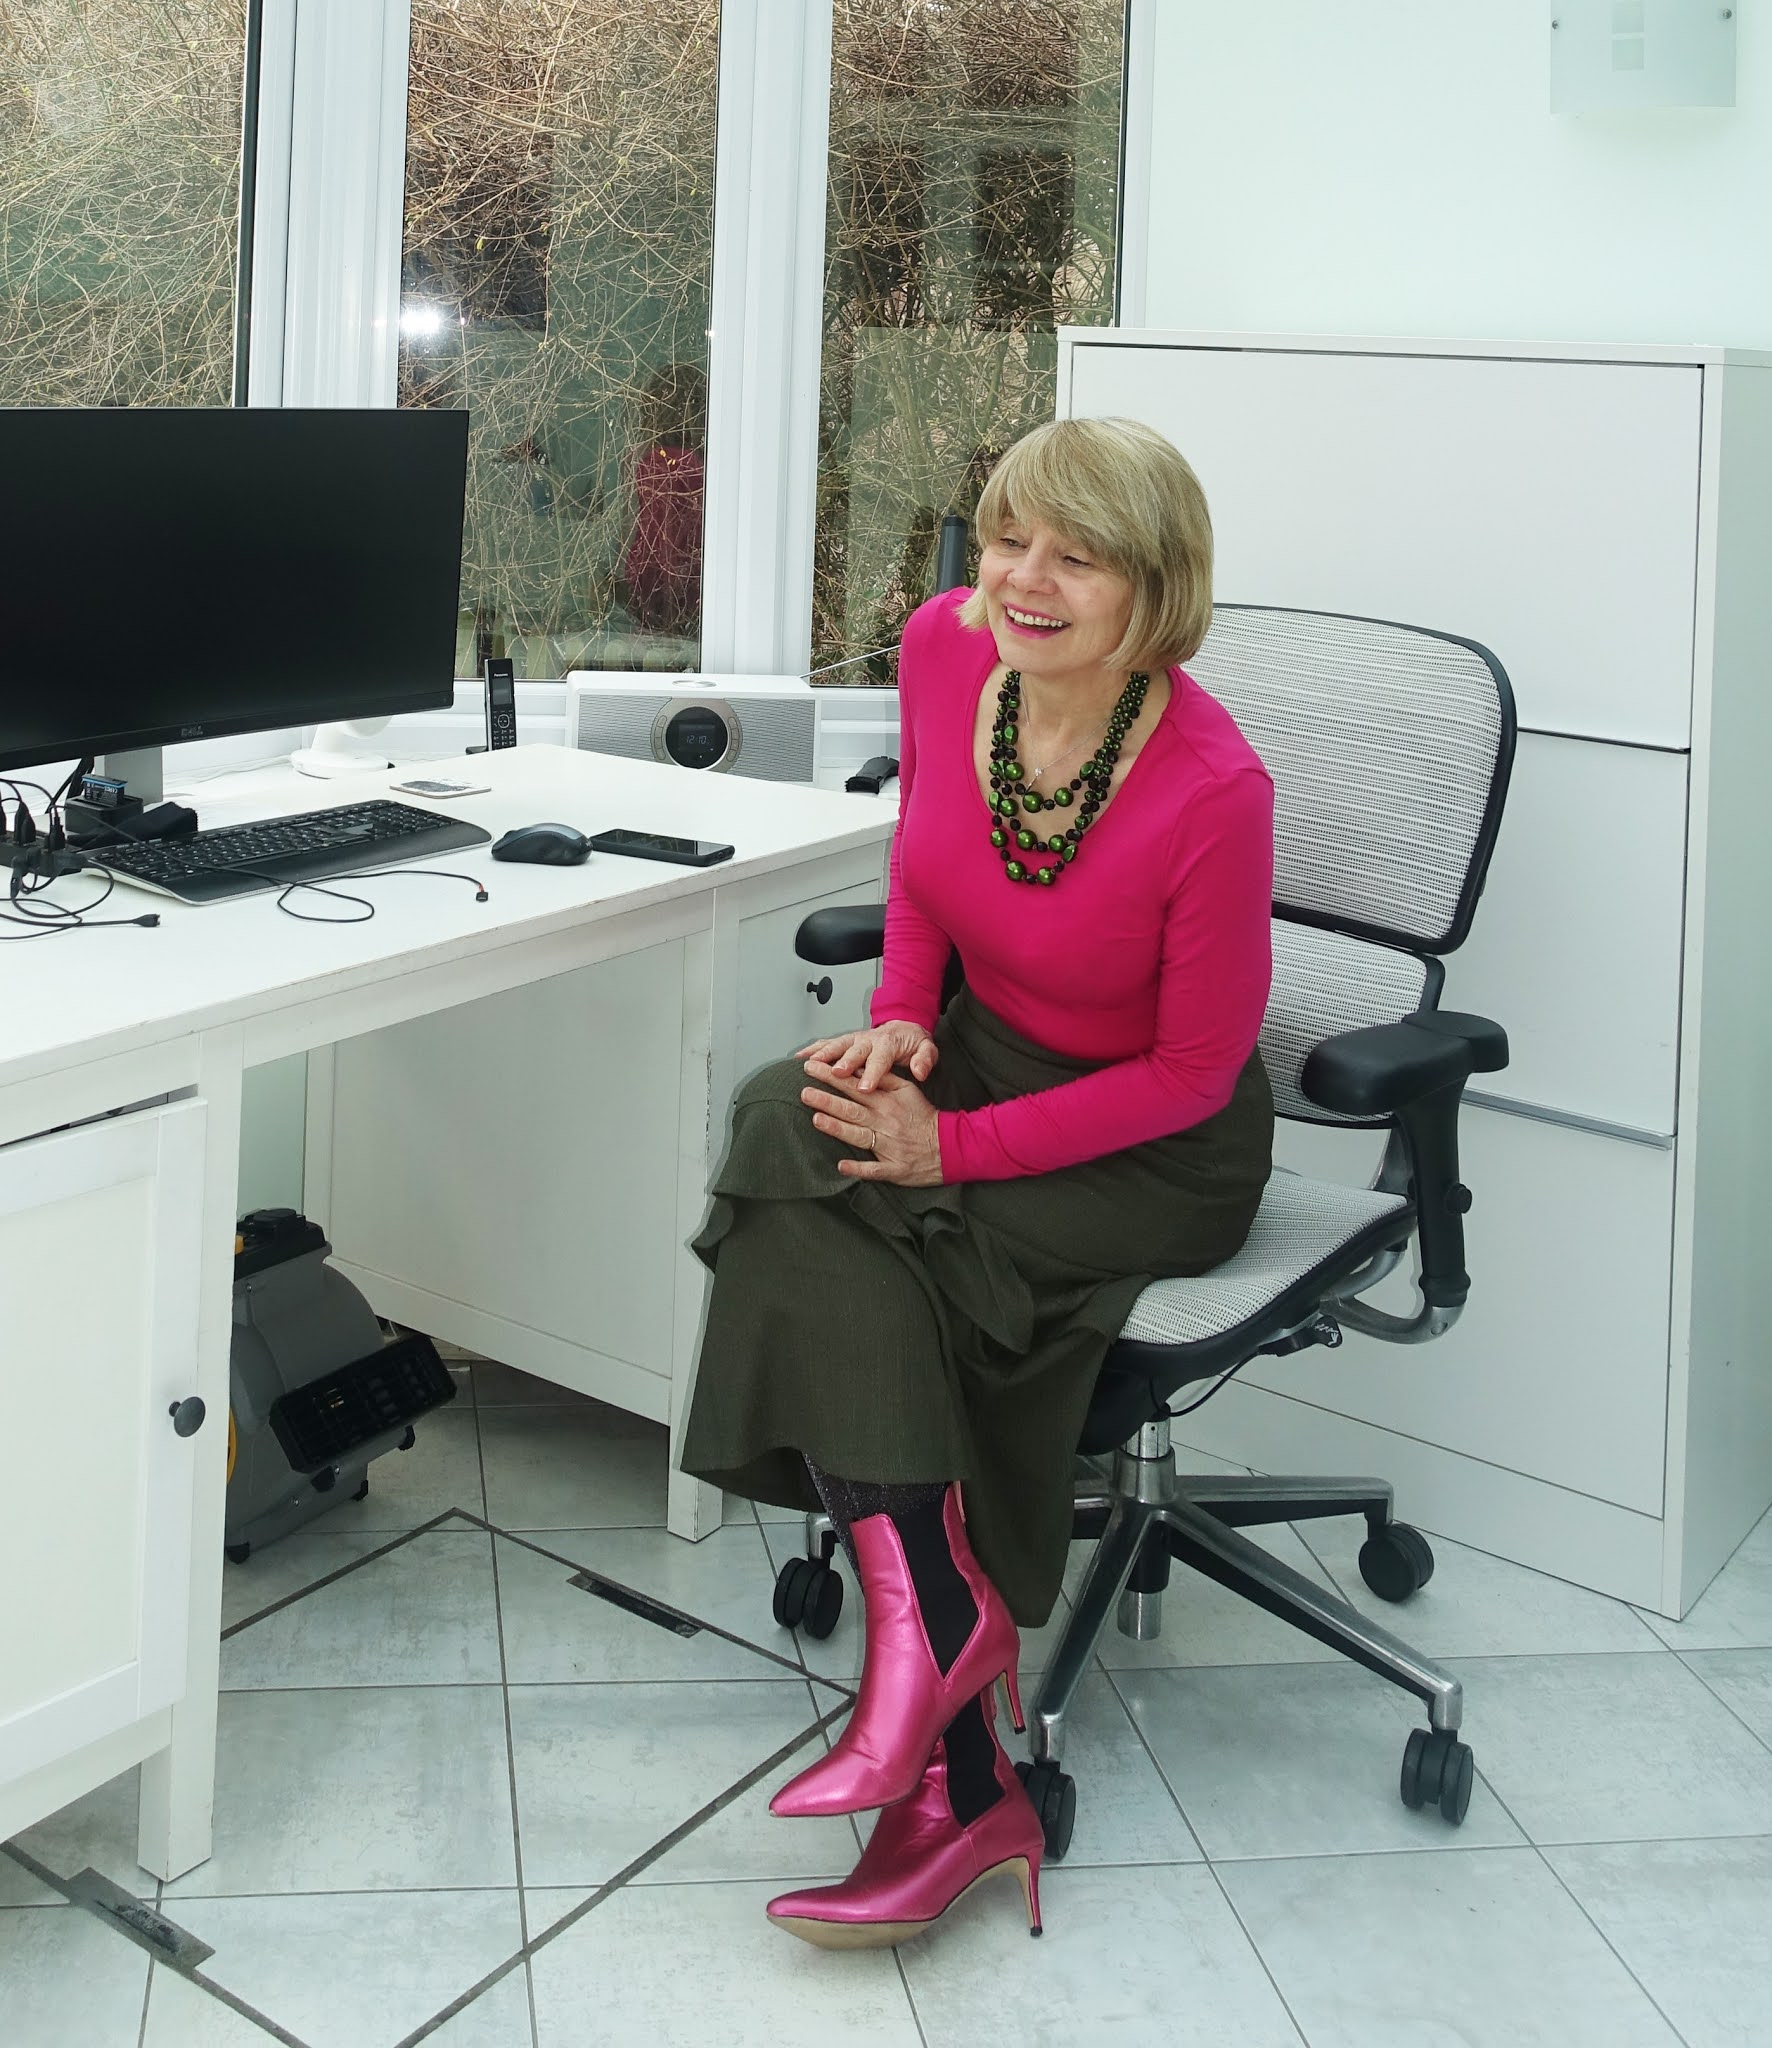 Gail Hanlon from Is This Mutton in khaki tiered skirt and fuchsia pink top and boots